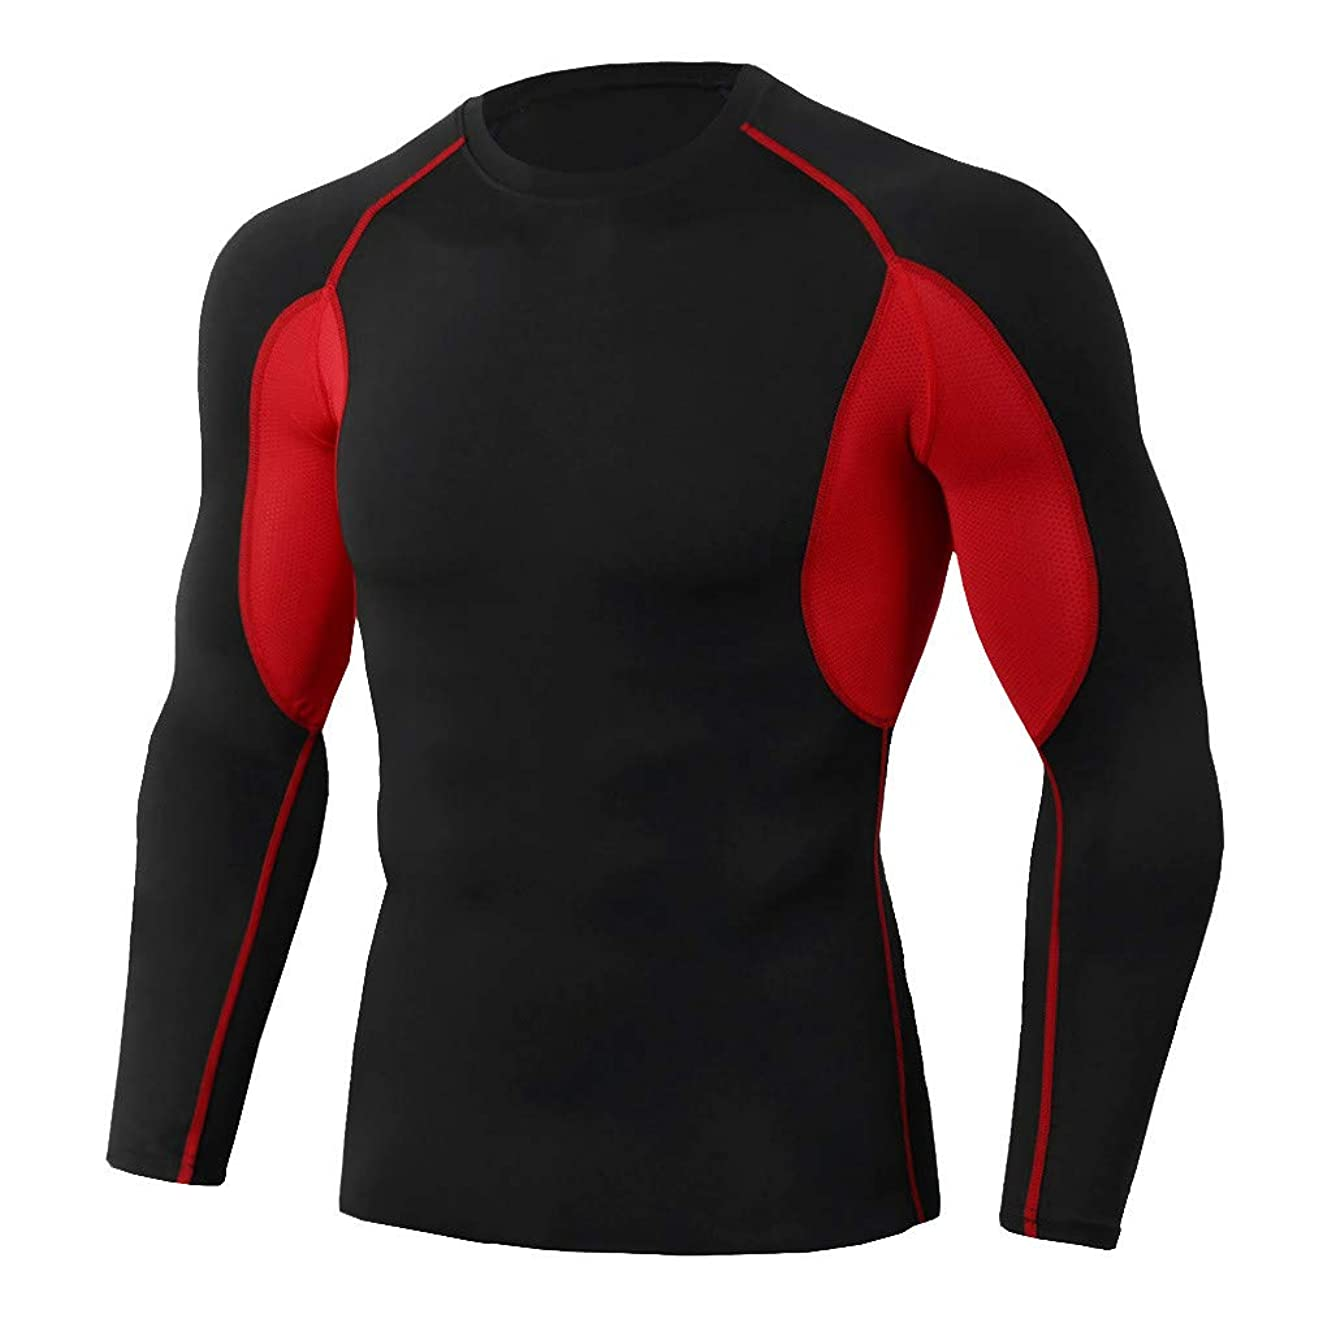 Xiloccer Man Fitness Sports Gym Workout Long Sleeve Fitness Sports Running Yoga Athletic Tees Top Blouse